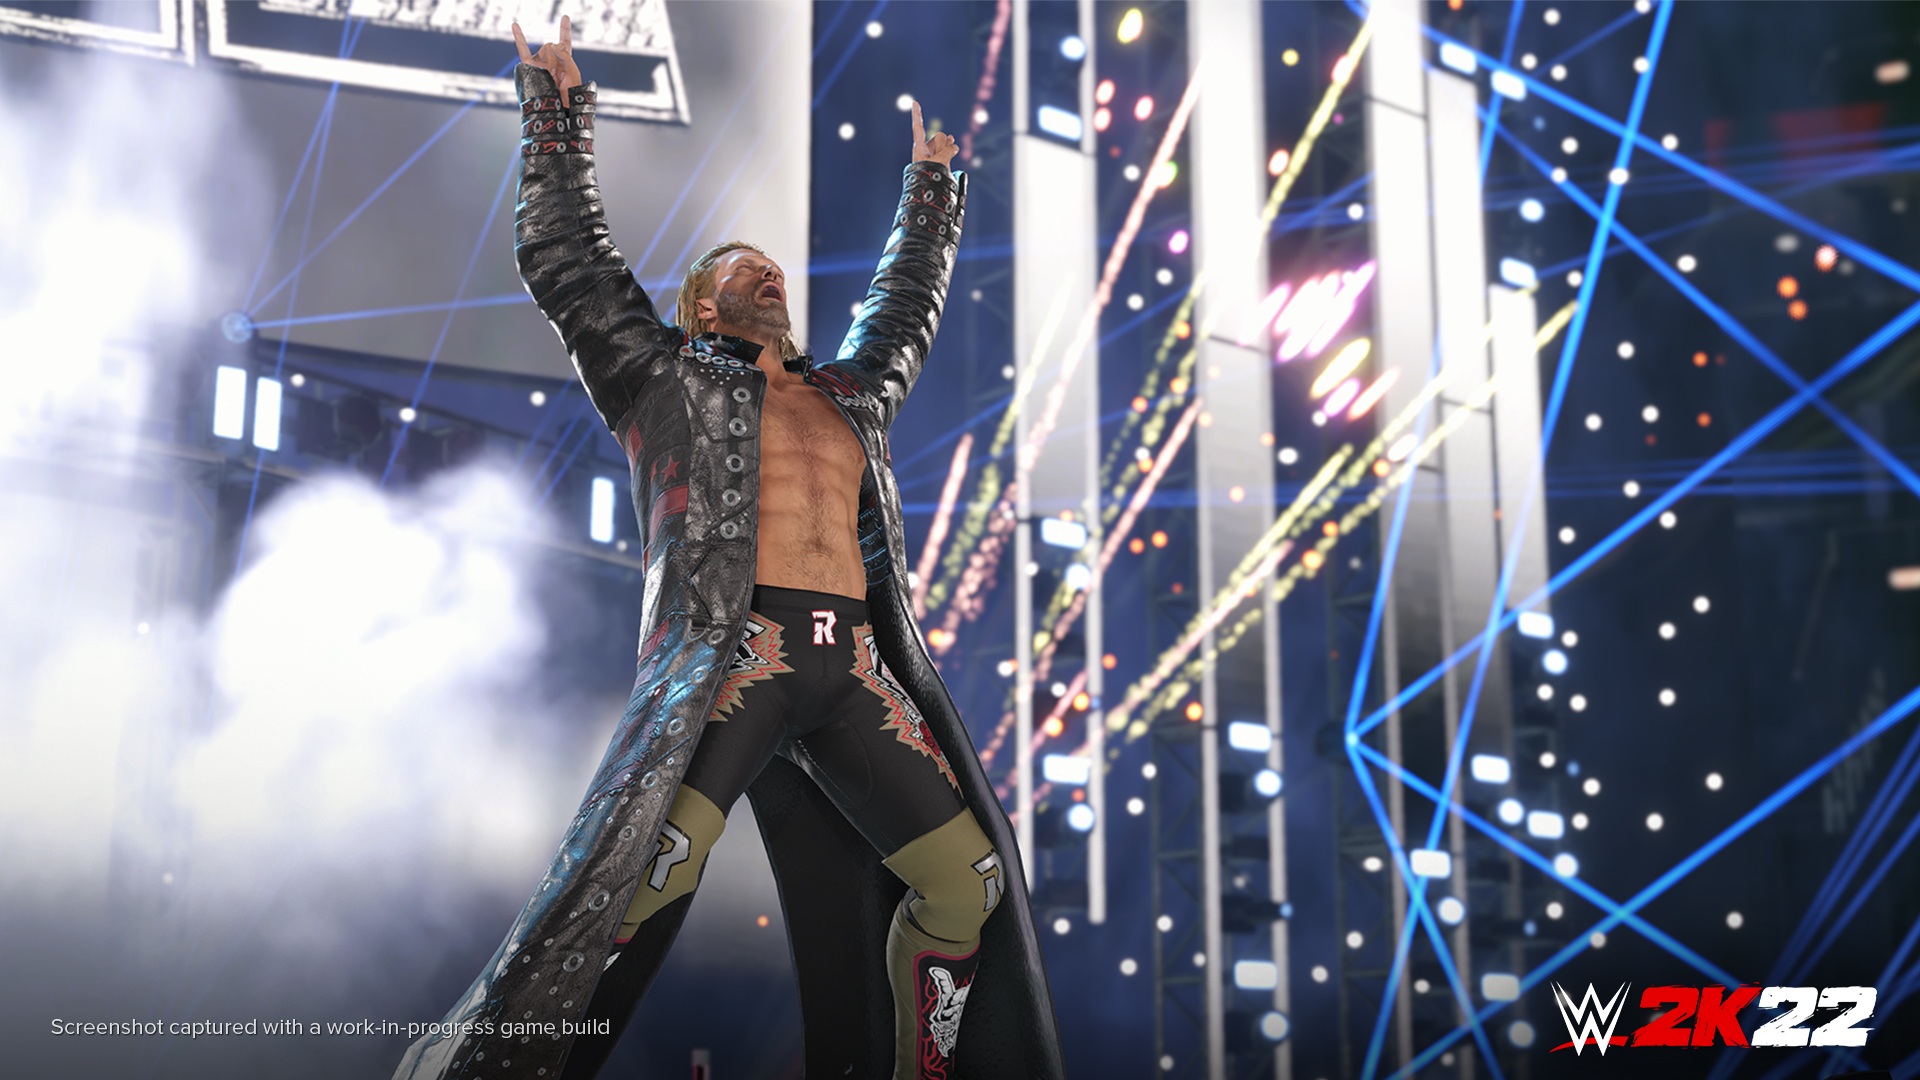 2K Announces 'WWE 2K22' Will Be Delayed, Shares New Trailer